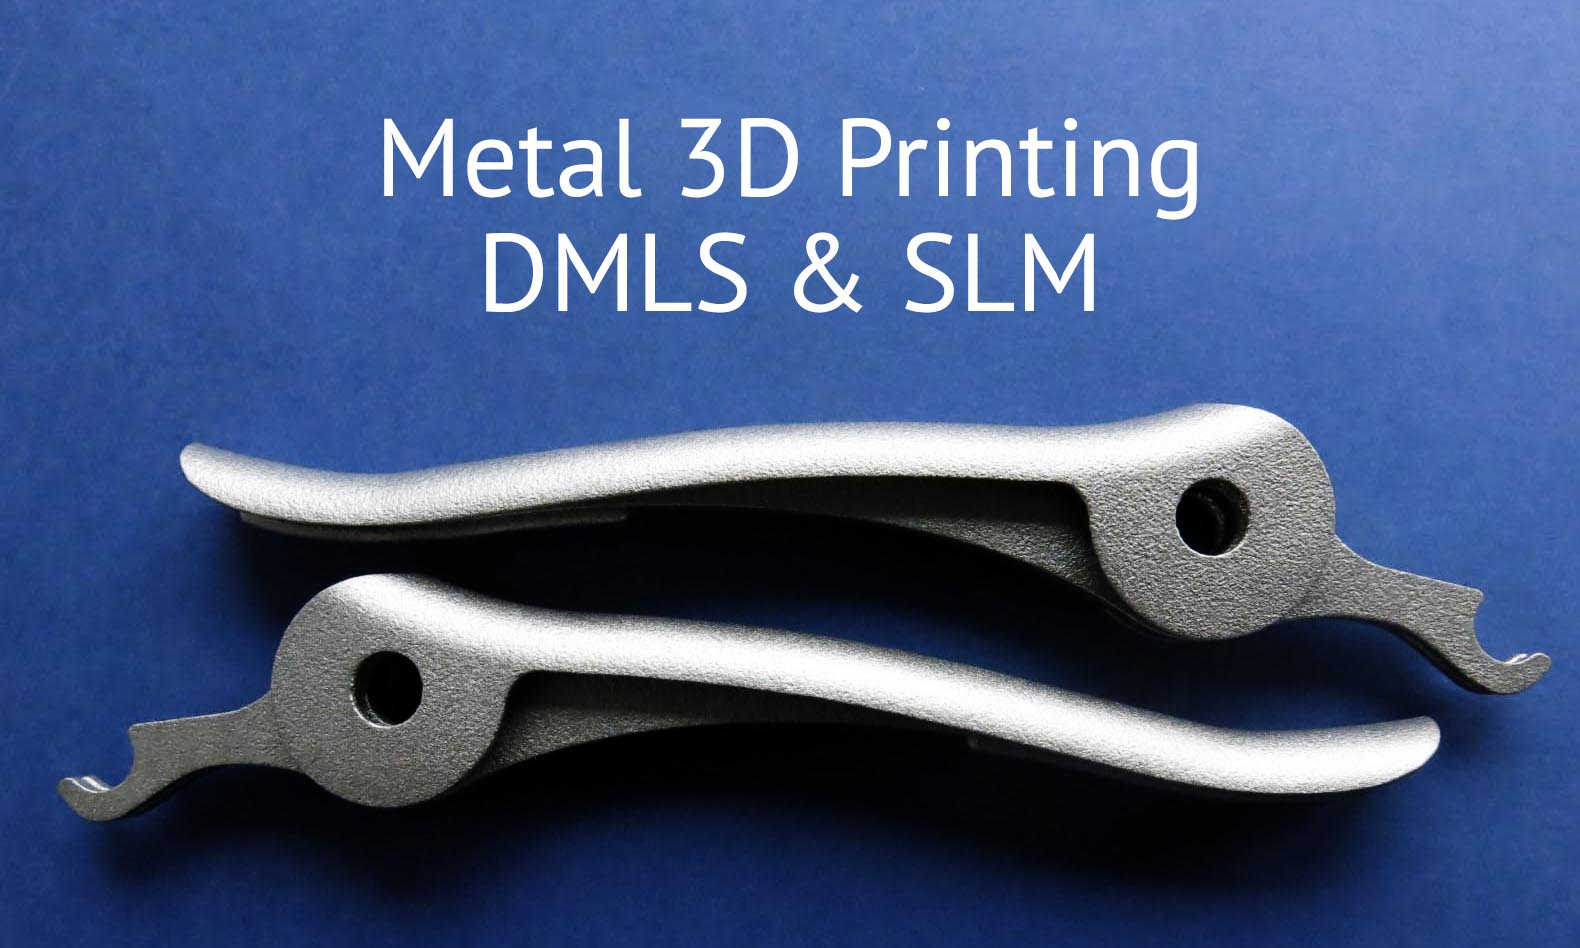 3D Printing Aluminium, Stainless Steel, and Titanium with the DMLS and SLM technologies